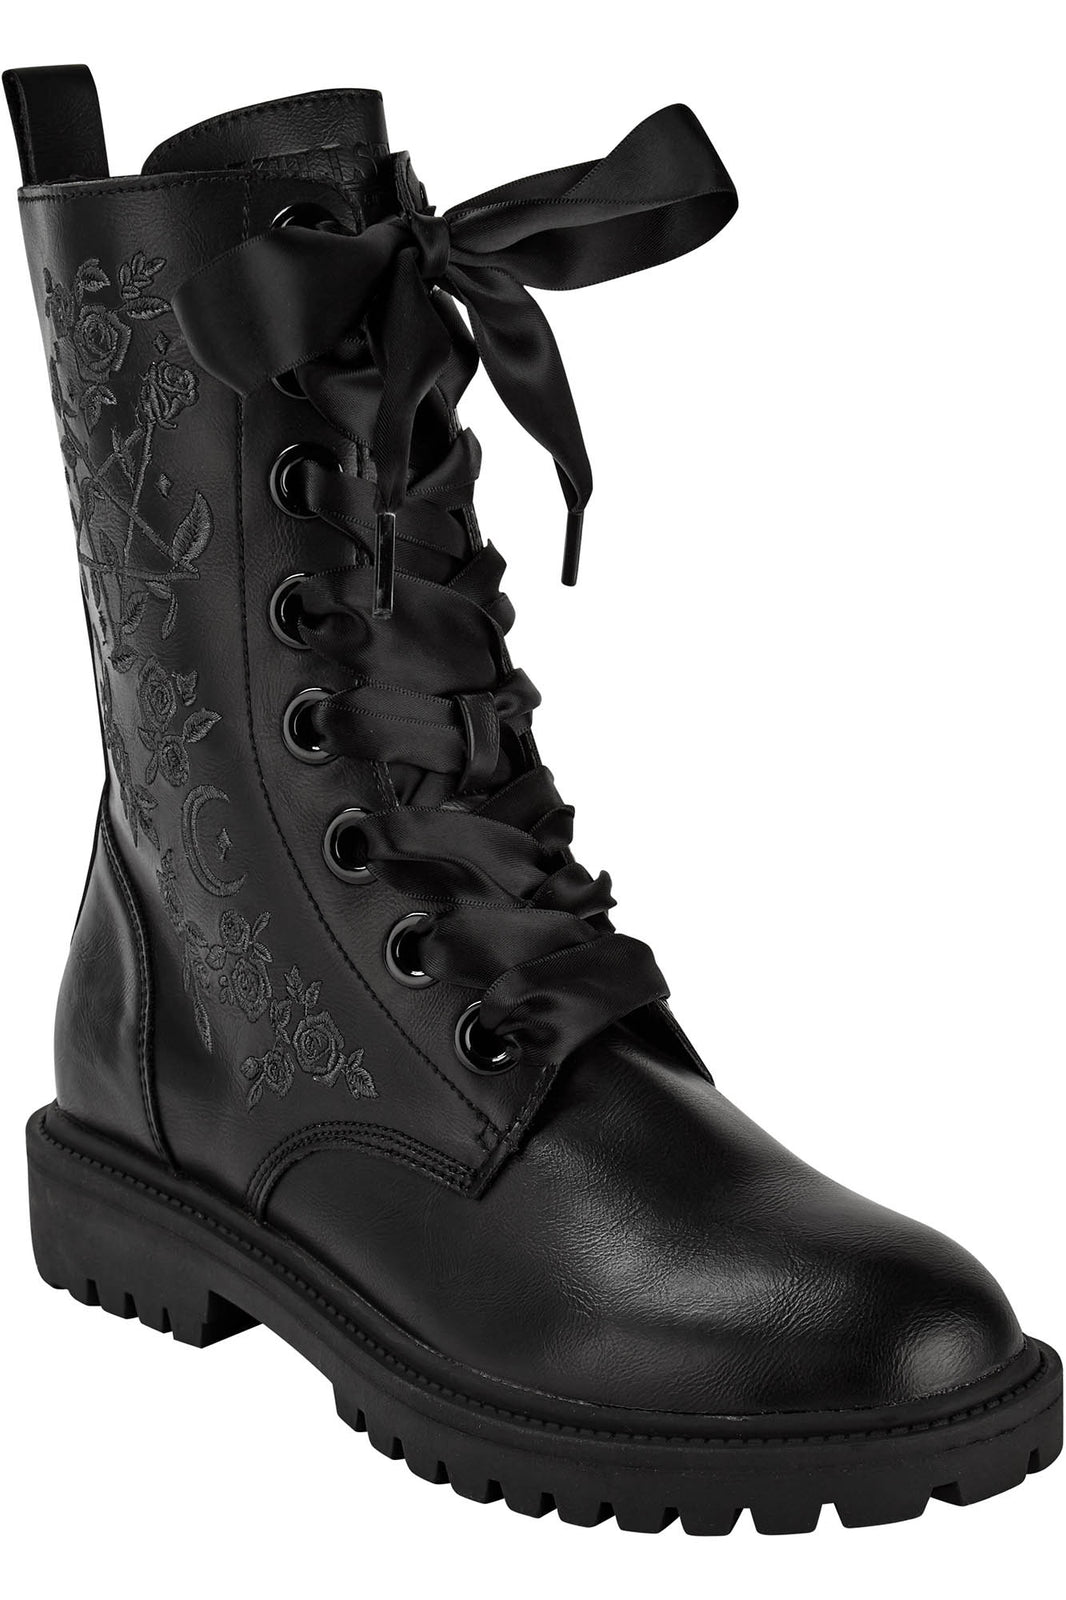 Enchanted Combat Boots